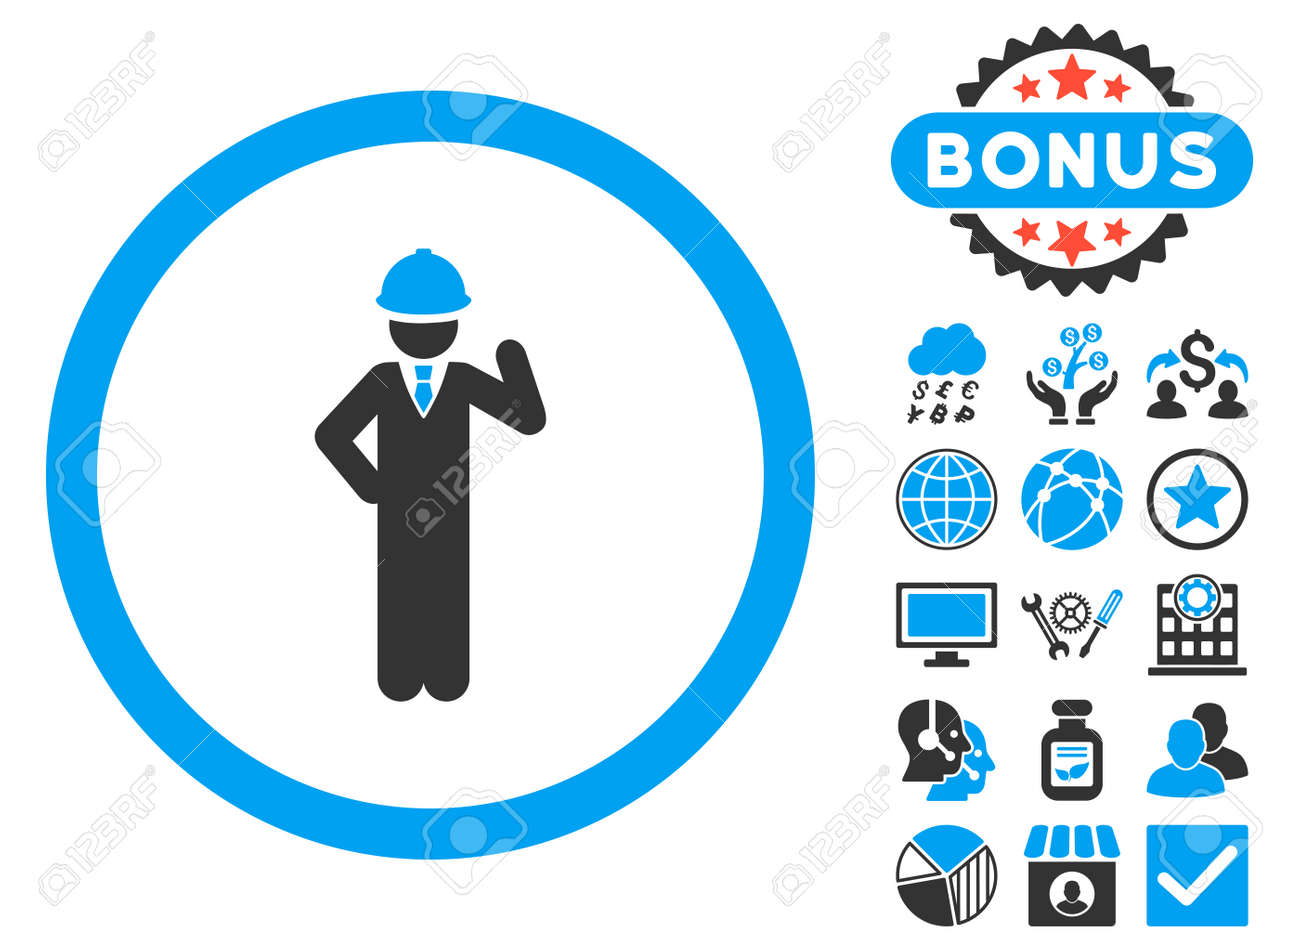 Engineer Icon With Bonus Pictures Vector Illustration Style